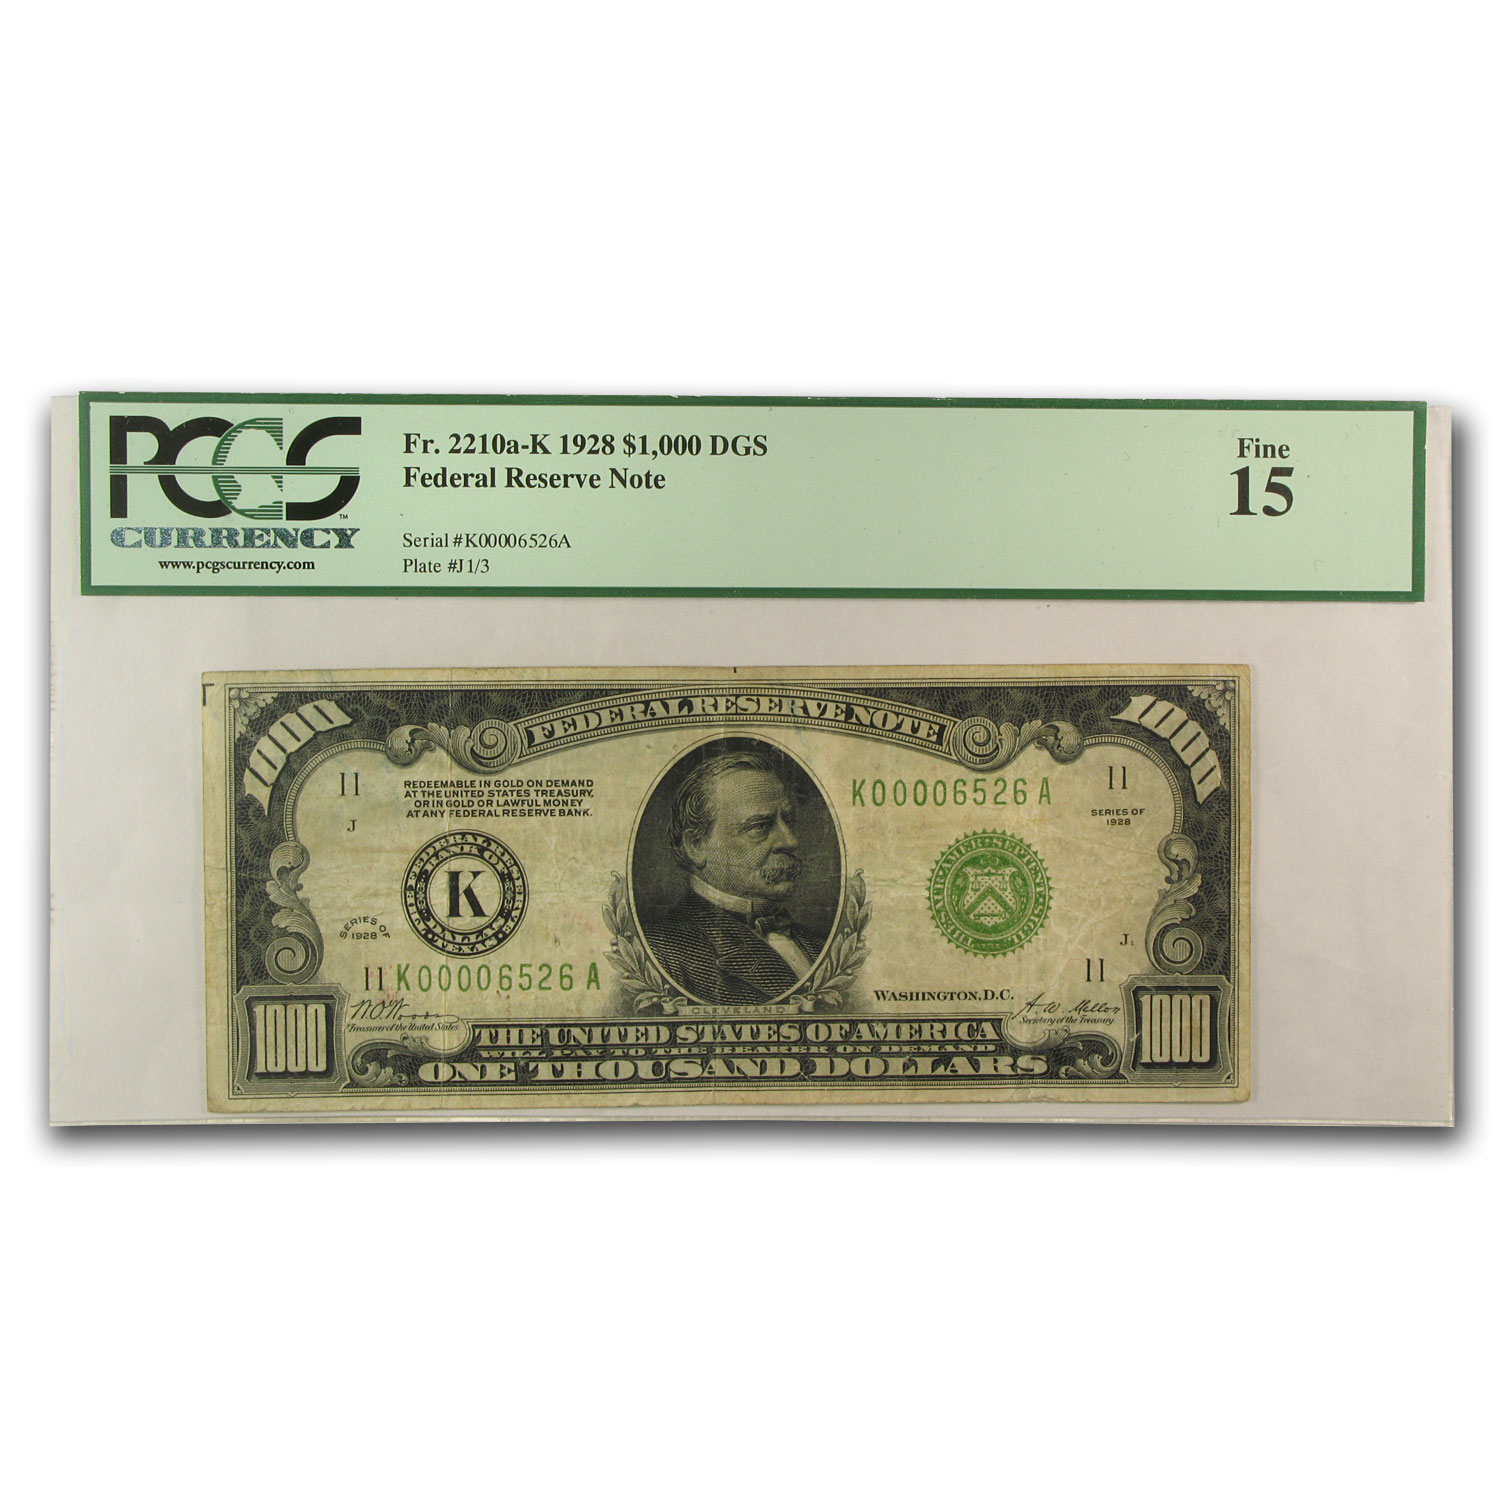 1928 (K-Dallas) $1,000 FRN Fine-15 PMGS